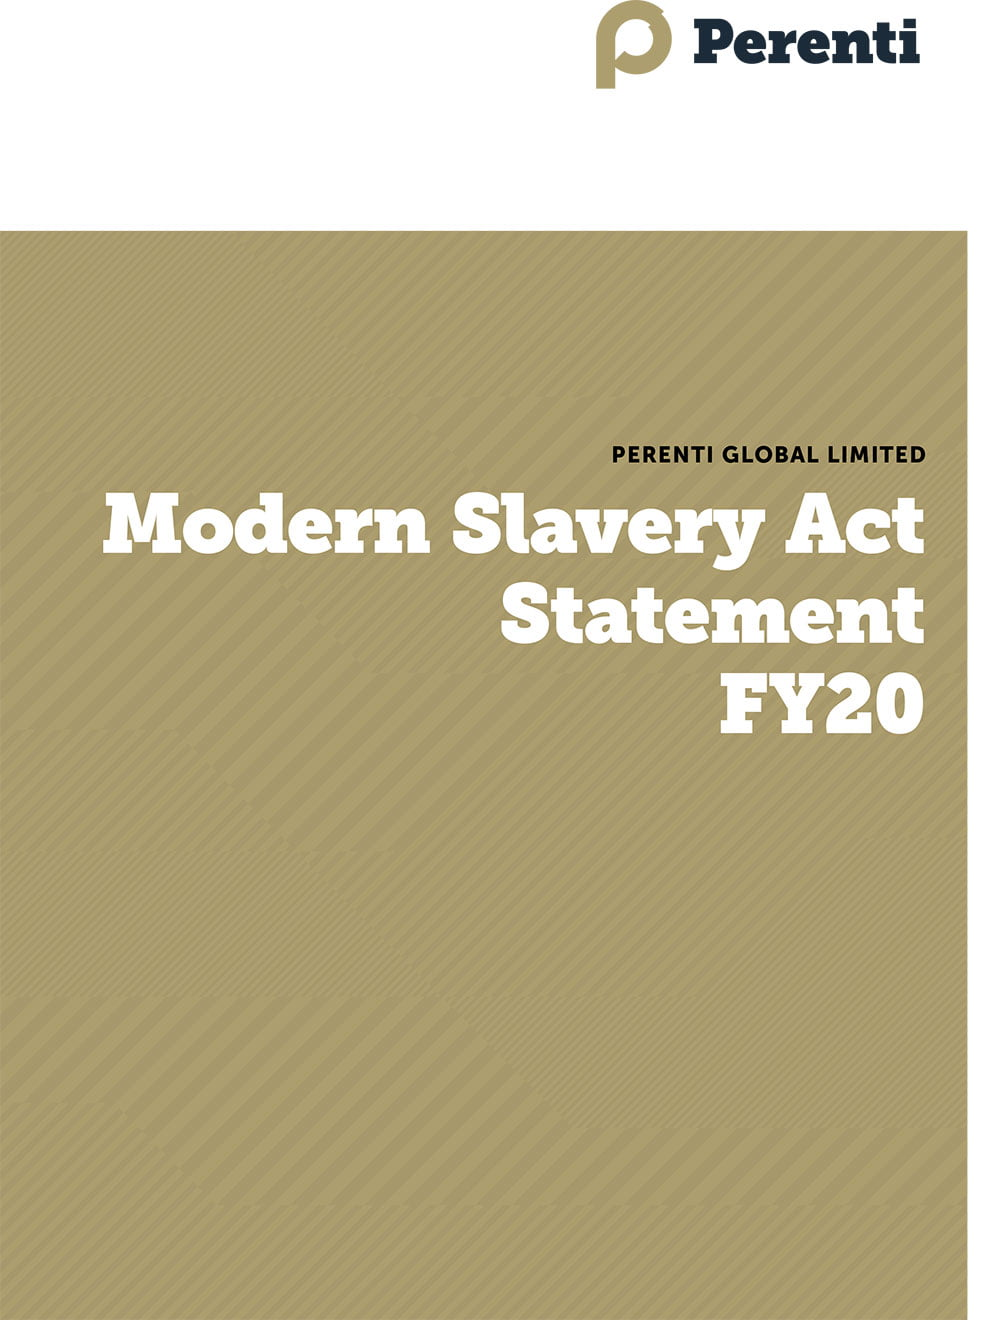 Human Rights • PER FY20 Modern Slavery Act Statement final 1